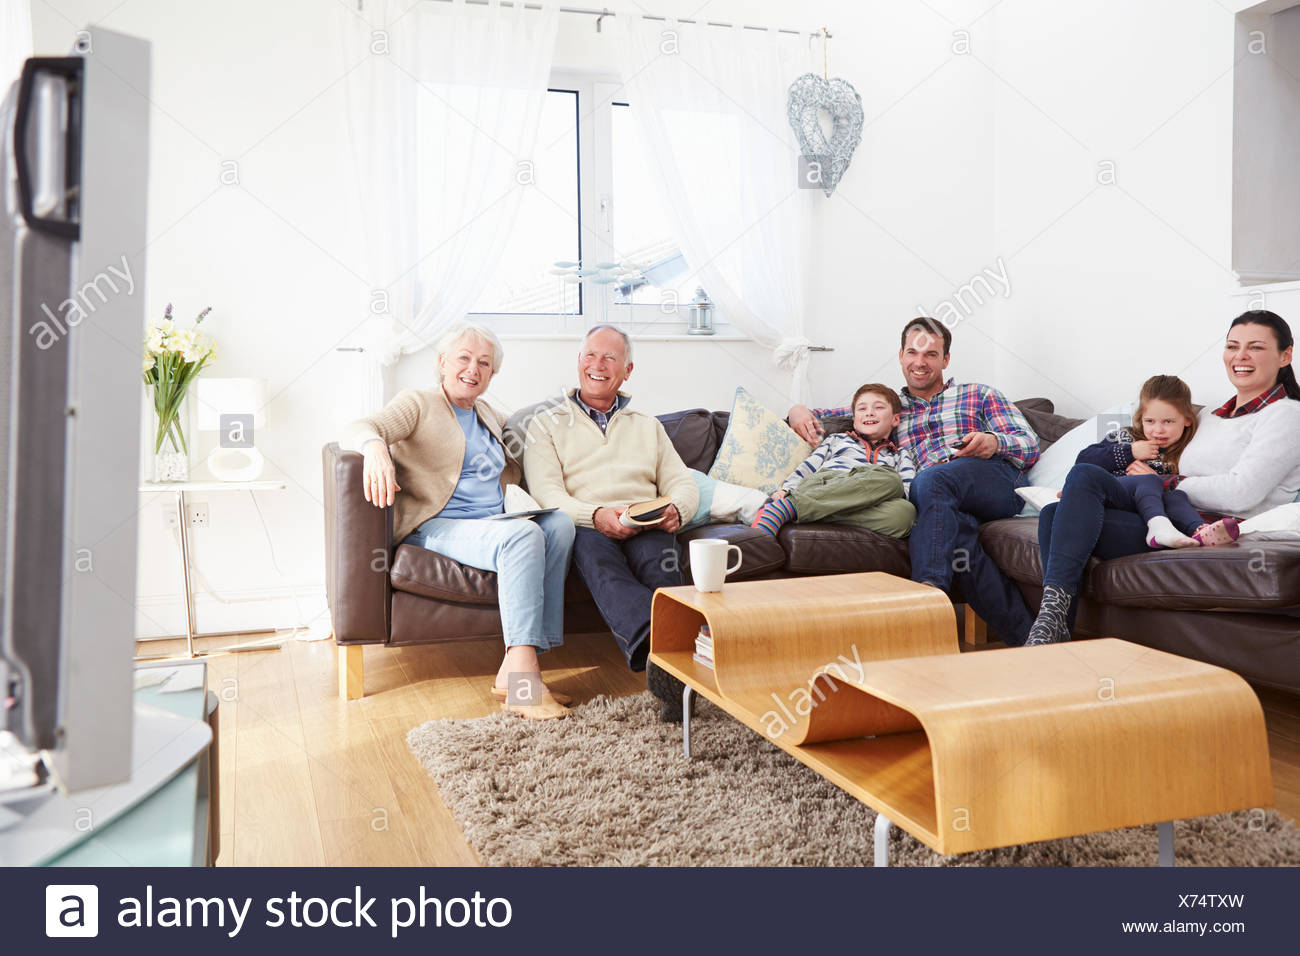 Multi Generation Family Watching TV Together - Stock Image